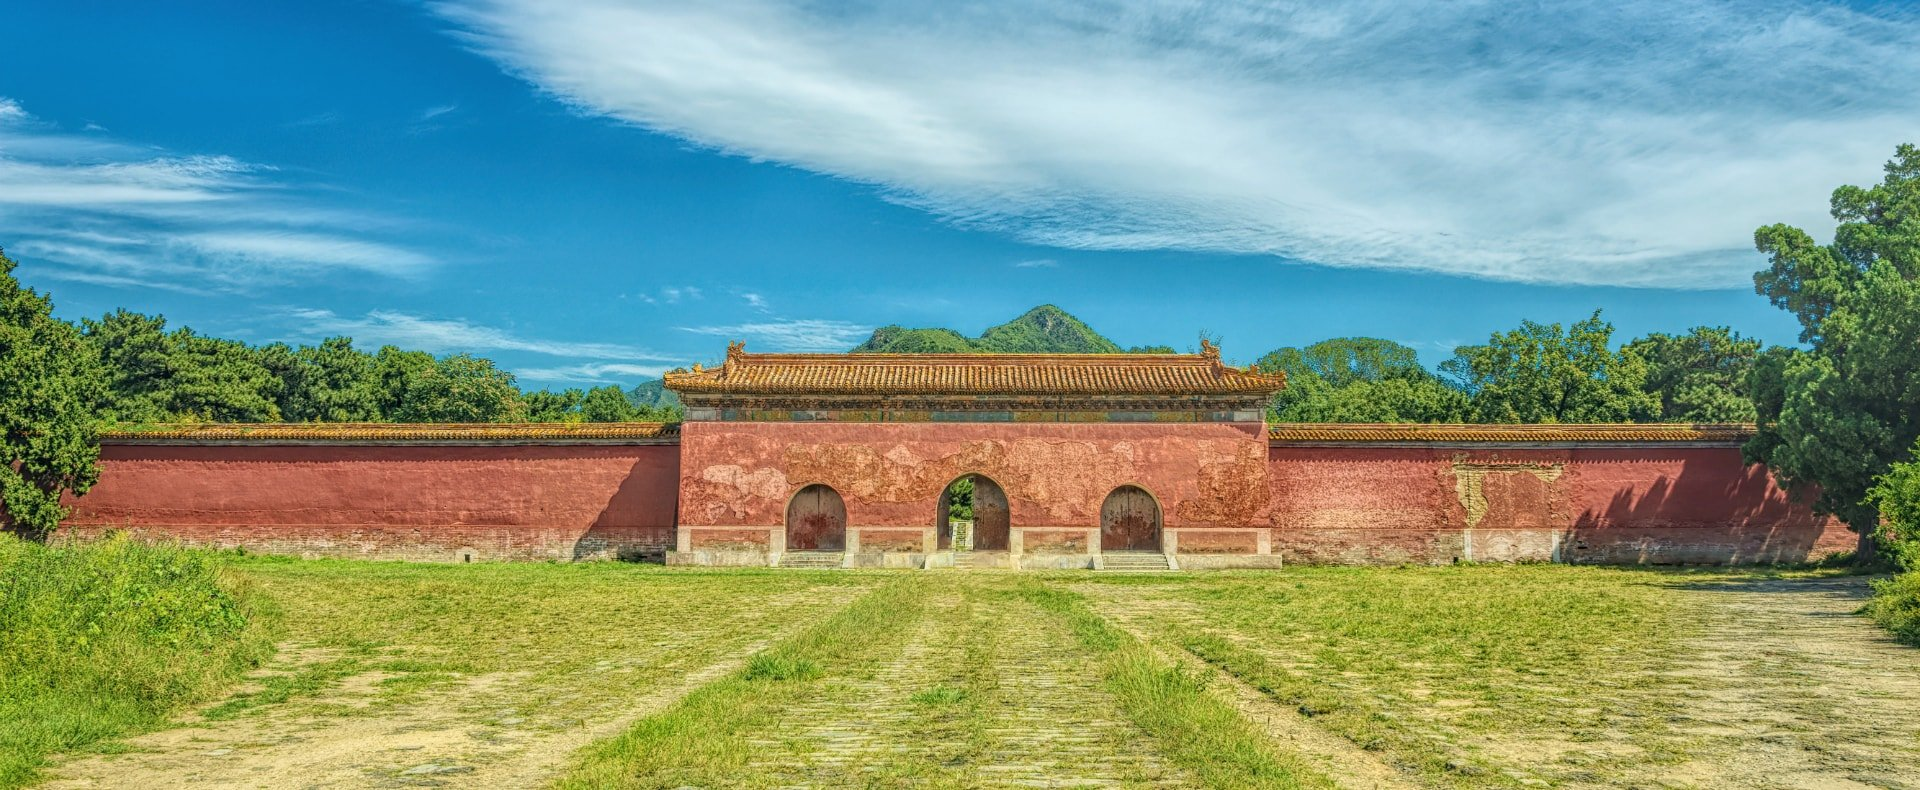 Ming Tombs, China Gallery